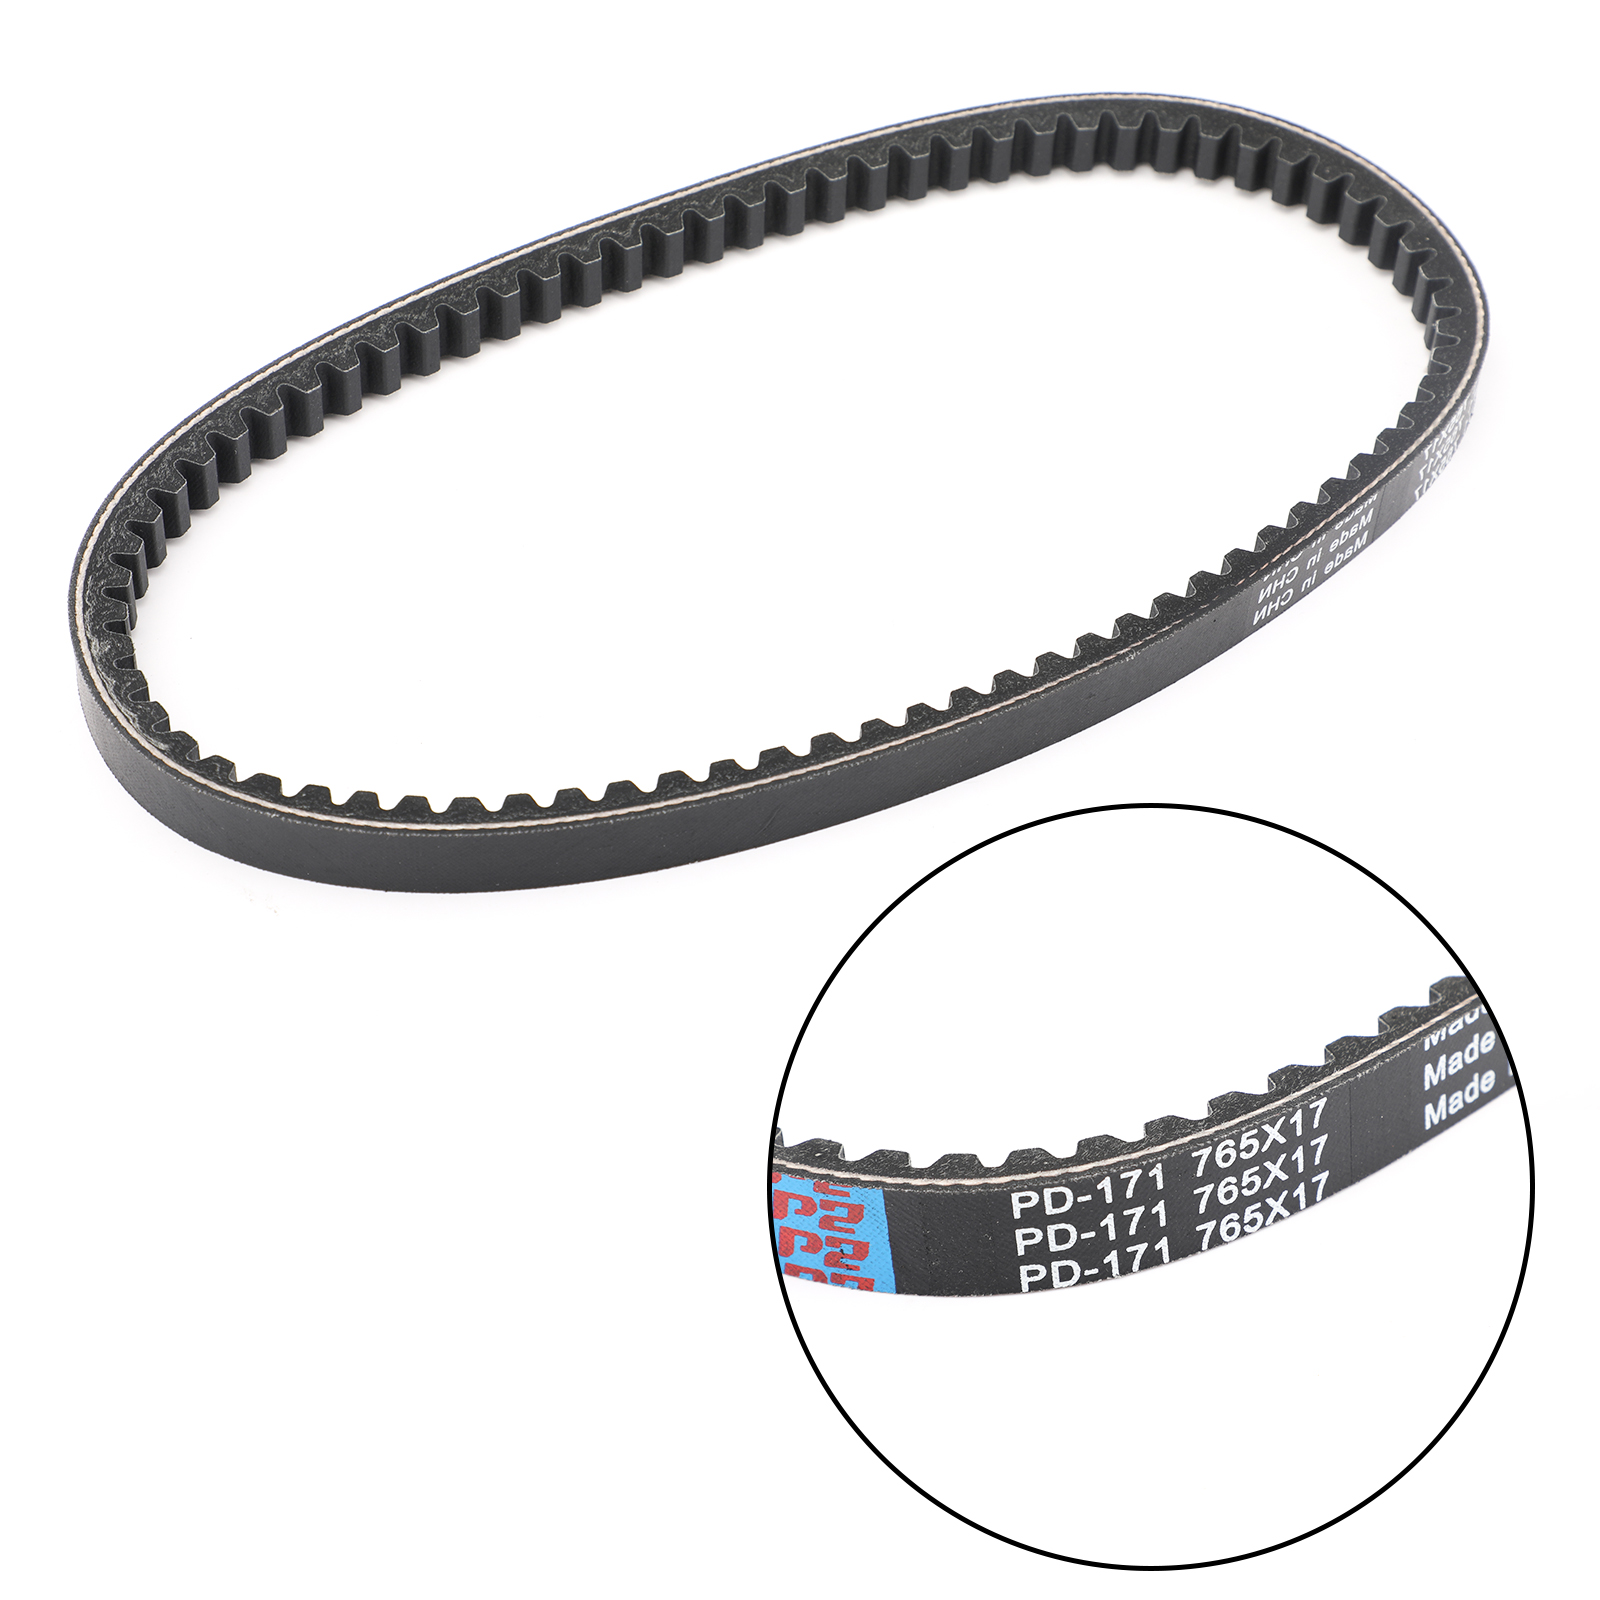 Areyourshop Motorcycle Drive Belt 765OC X 17W For Suzuki LT80 Quadsport 80 87-06 For Kawasaki KFX80 03-06 Motorcycle Accessorie